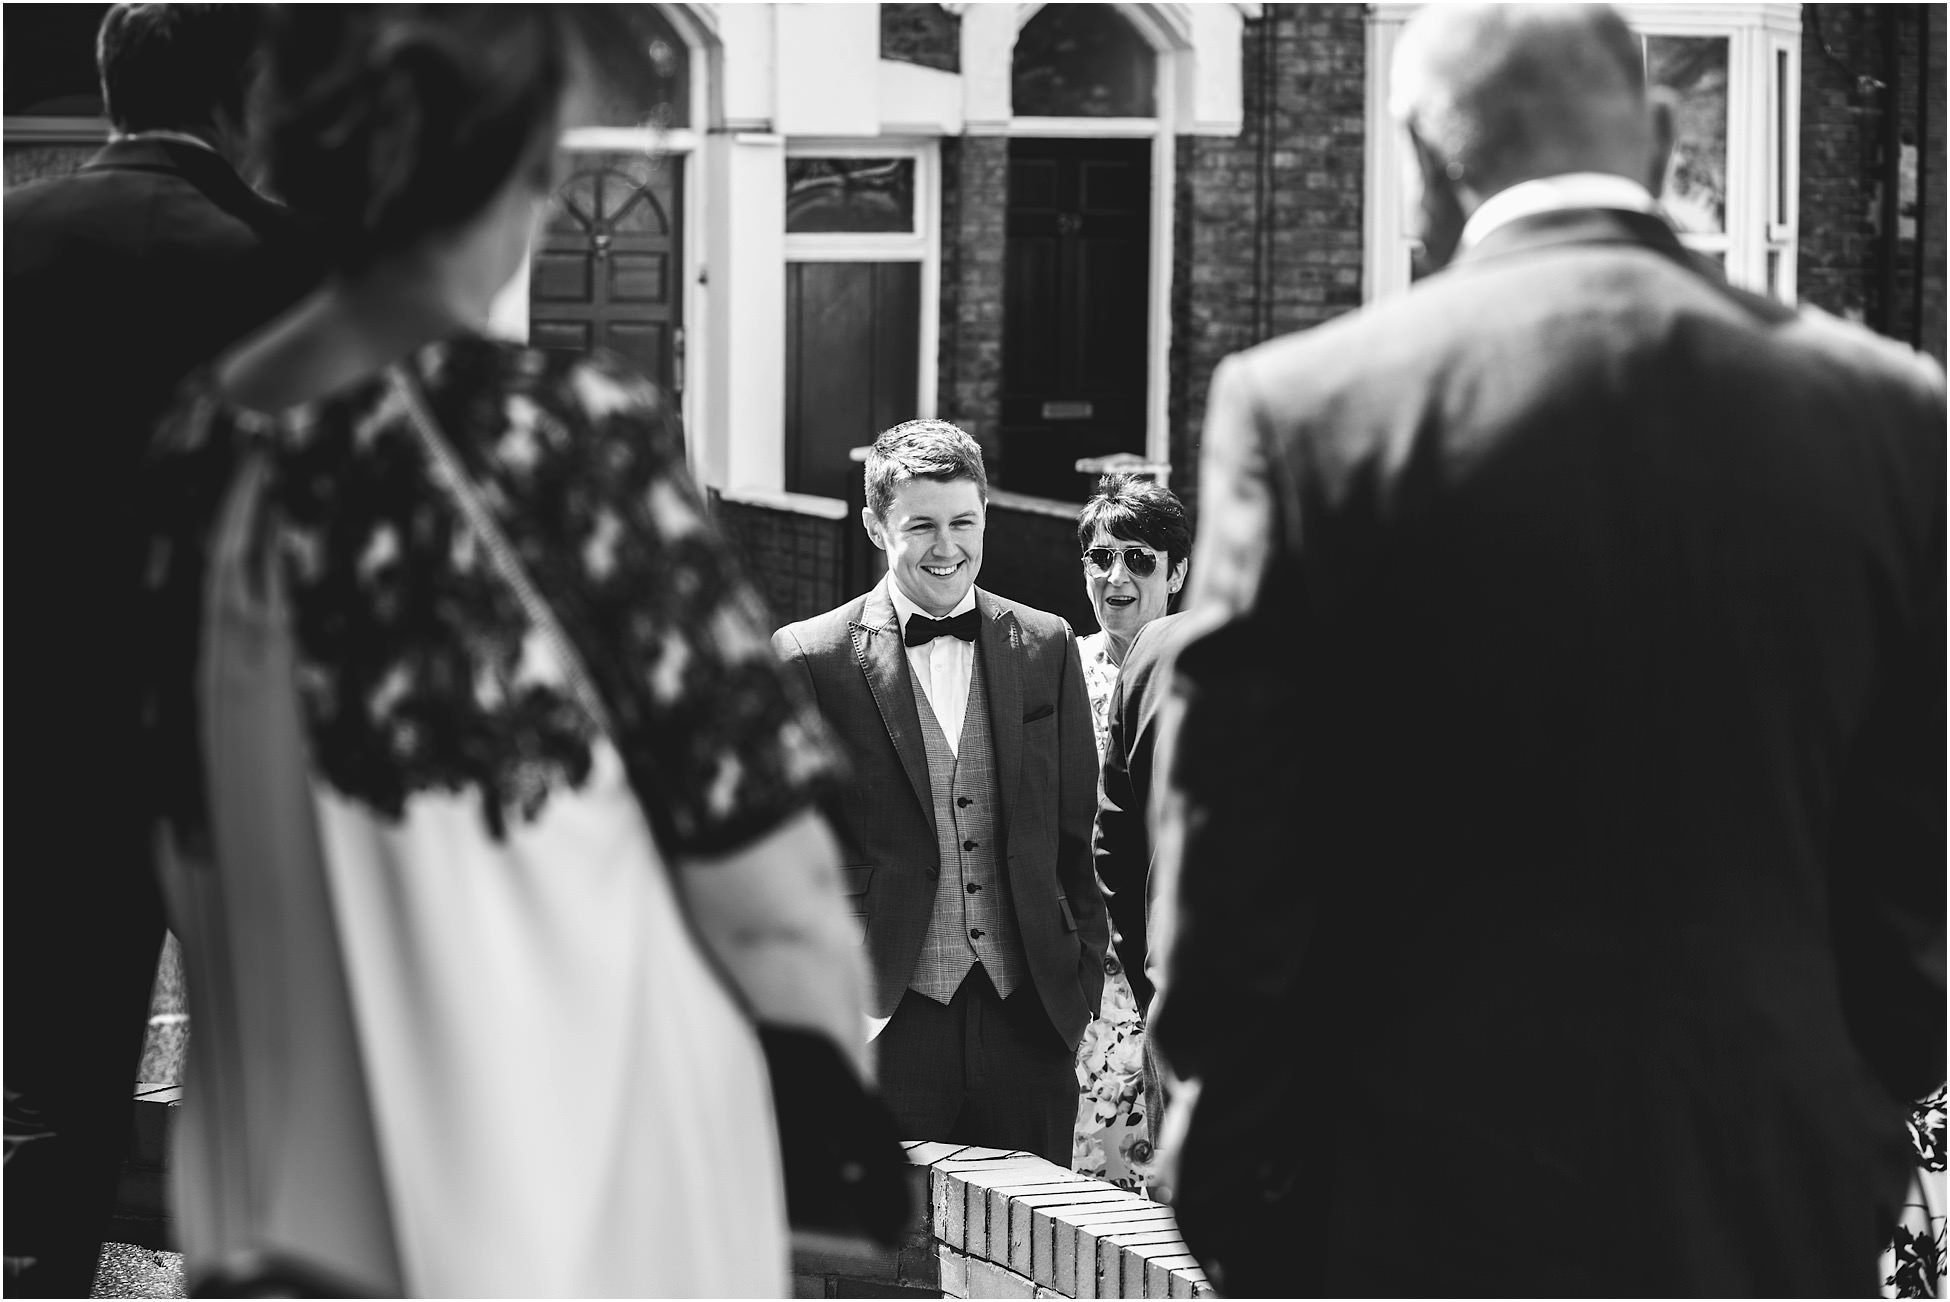 Groom outside church with guests at his Cheshire wedding